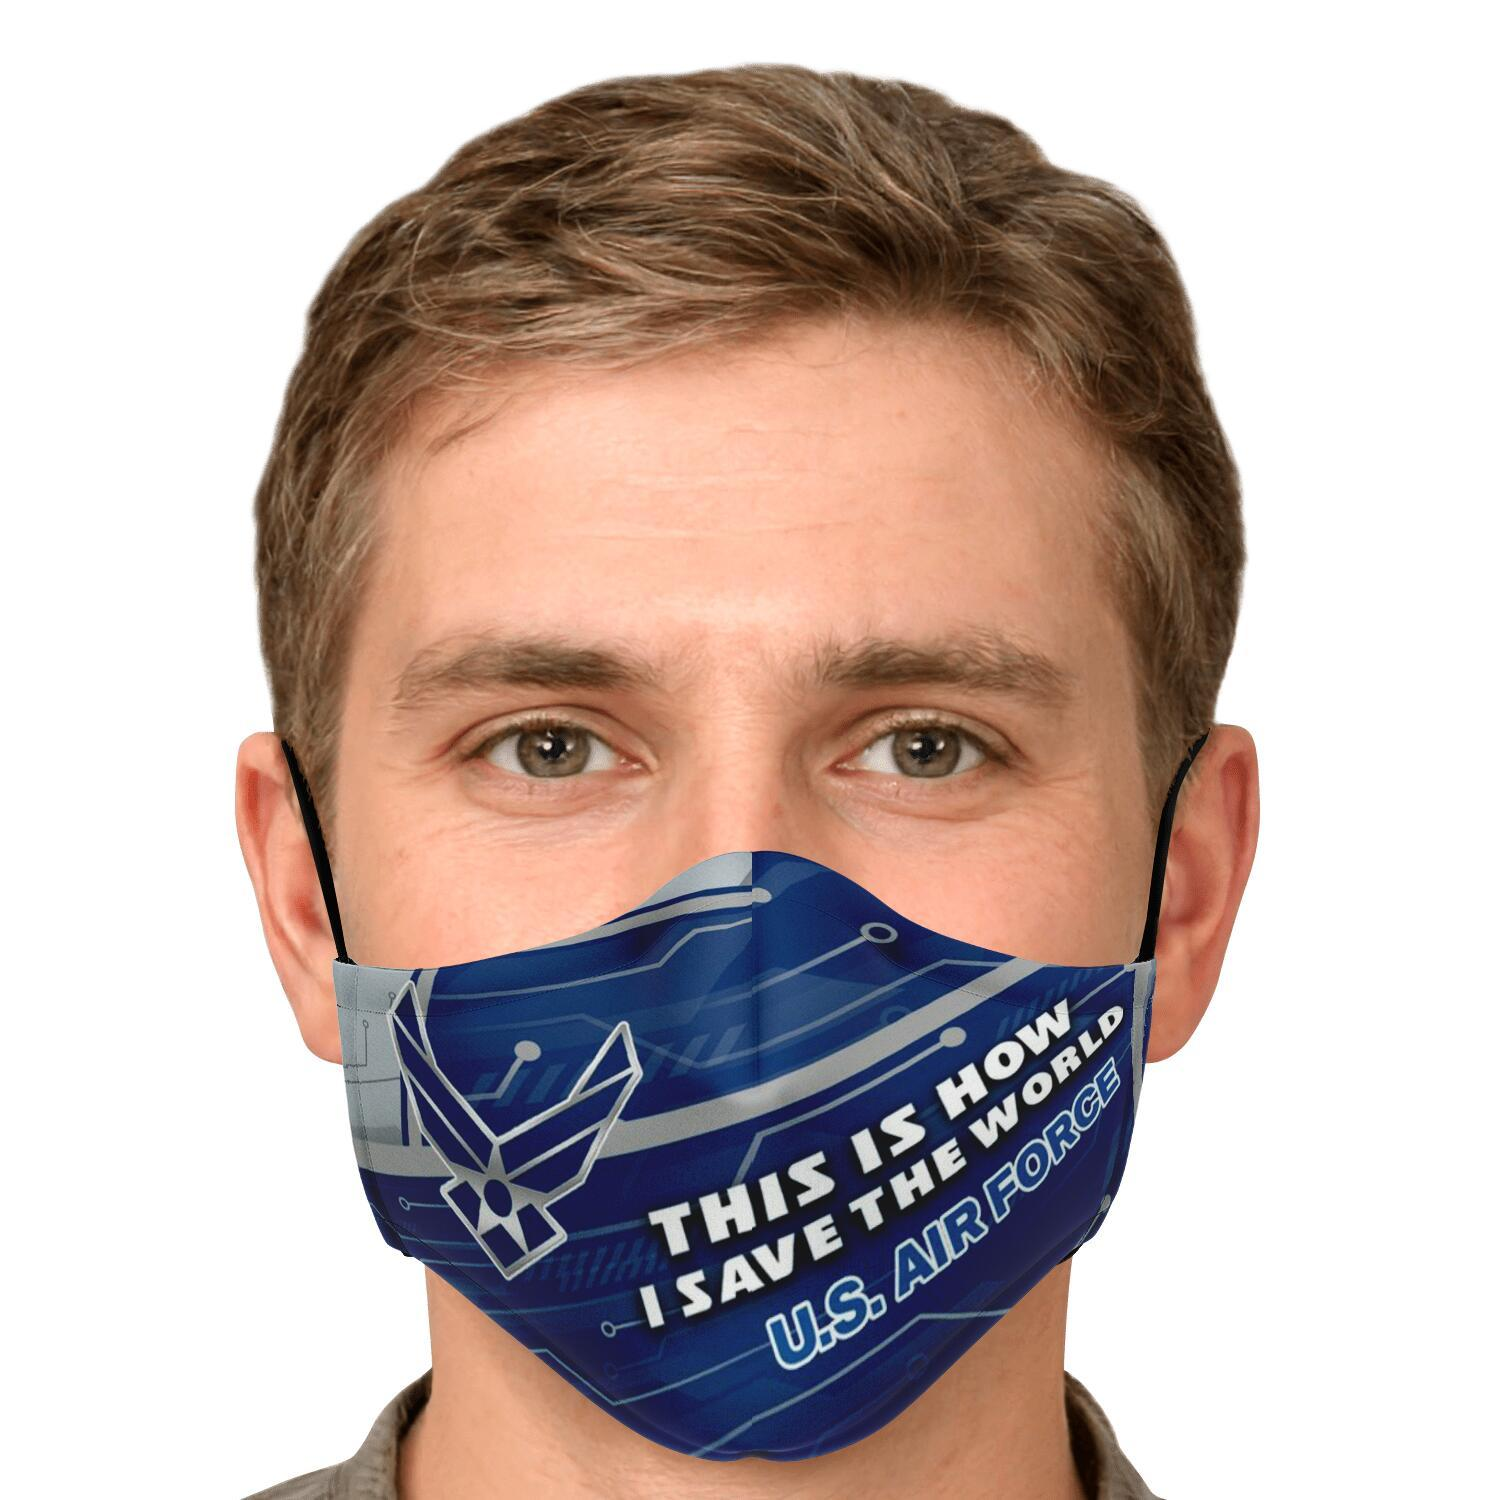 This Is How I Save The World U.S. Air Force Face Masks 4